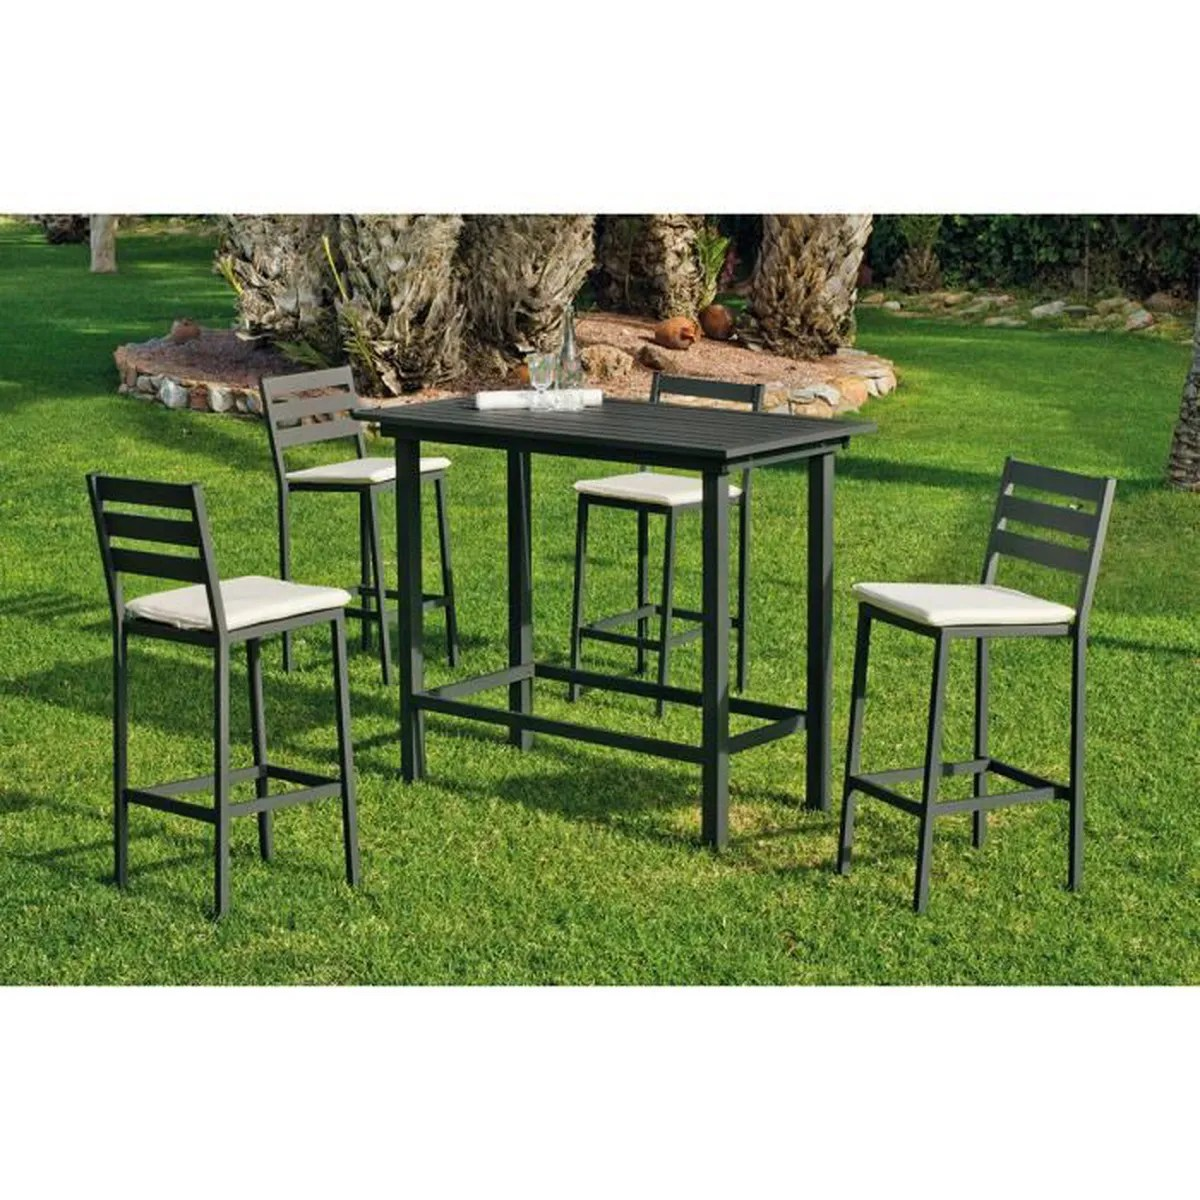 Chaises Hautes Bar Ensemble De Jardin Galicia 1 Table Bar 4 Chaises Hautes Anthracite